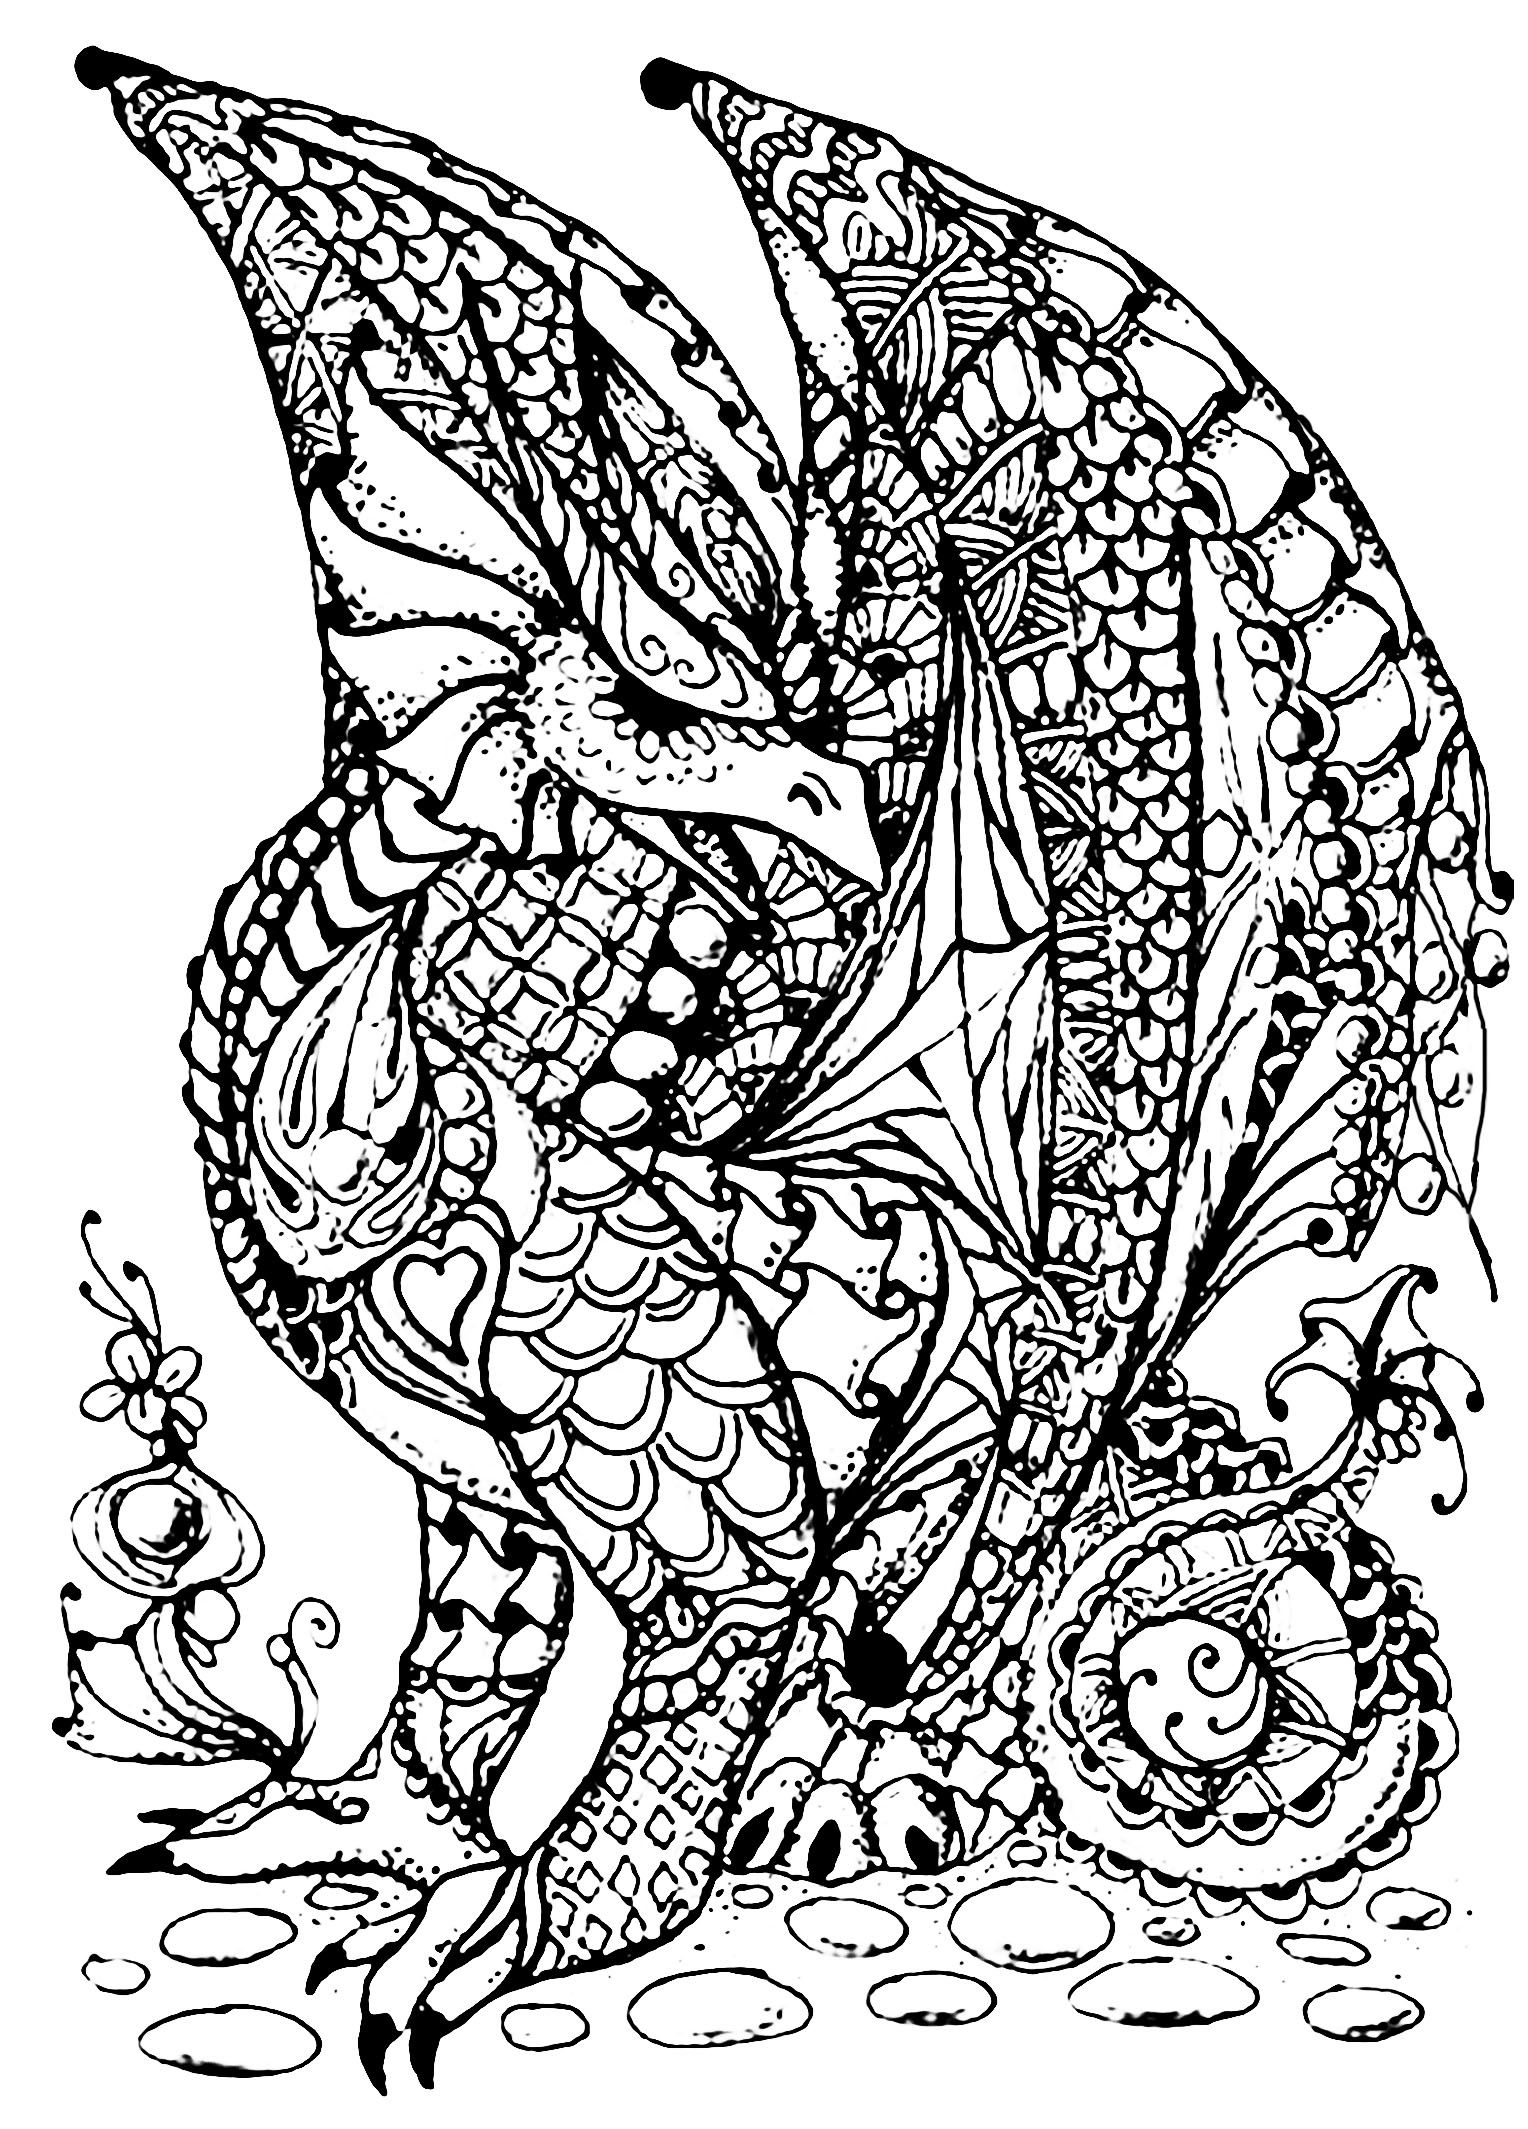 Best of dragon mandala coloring pages Free Dragon full